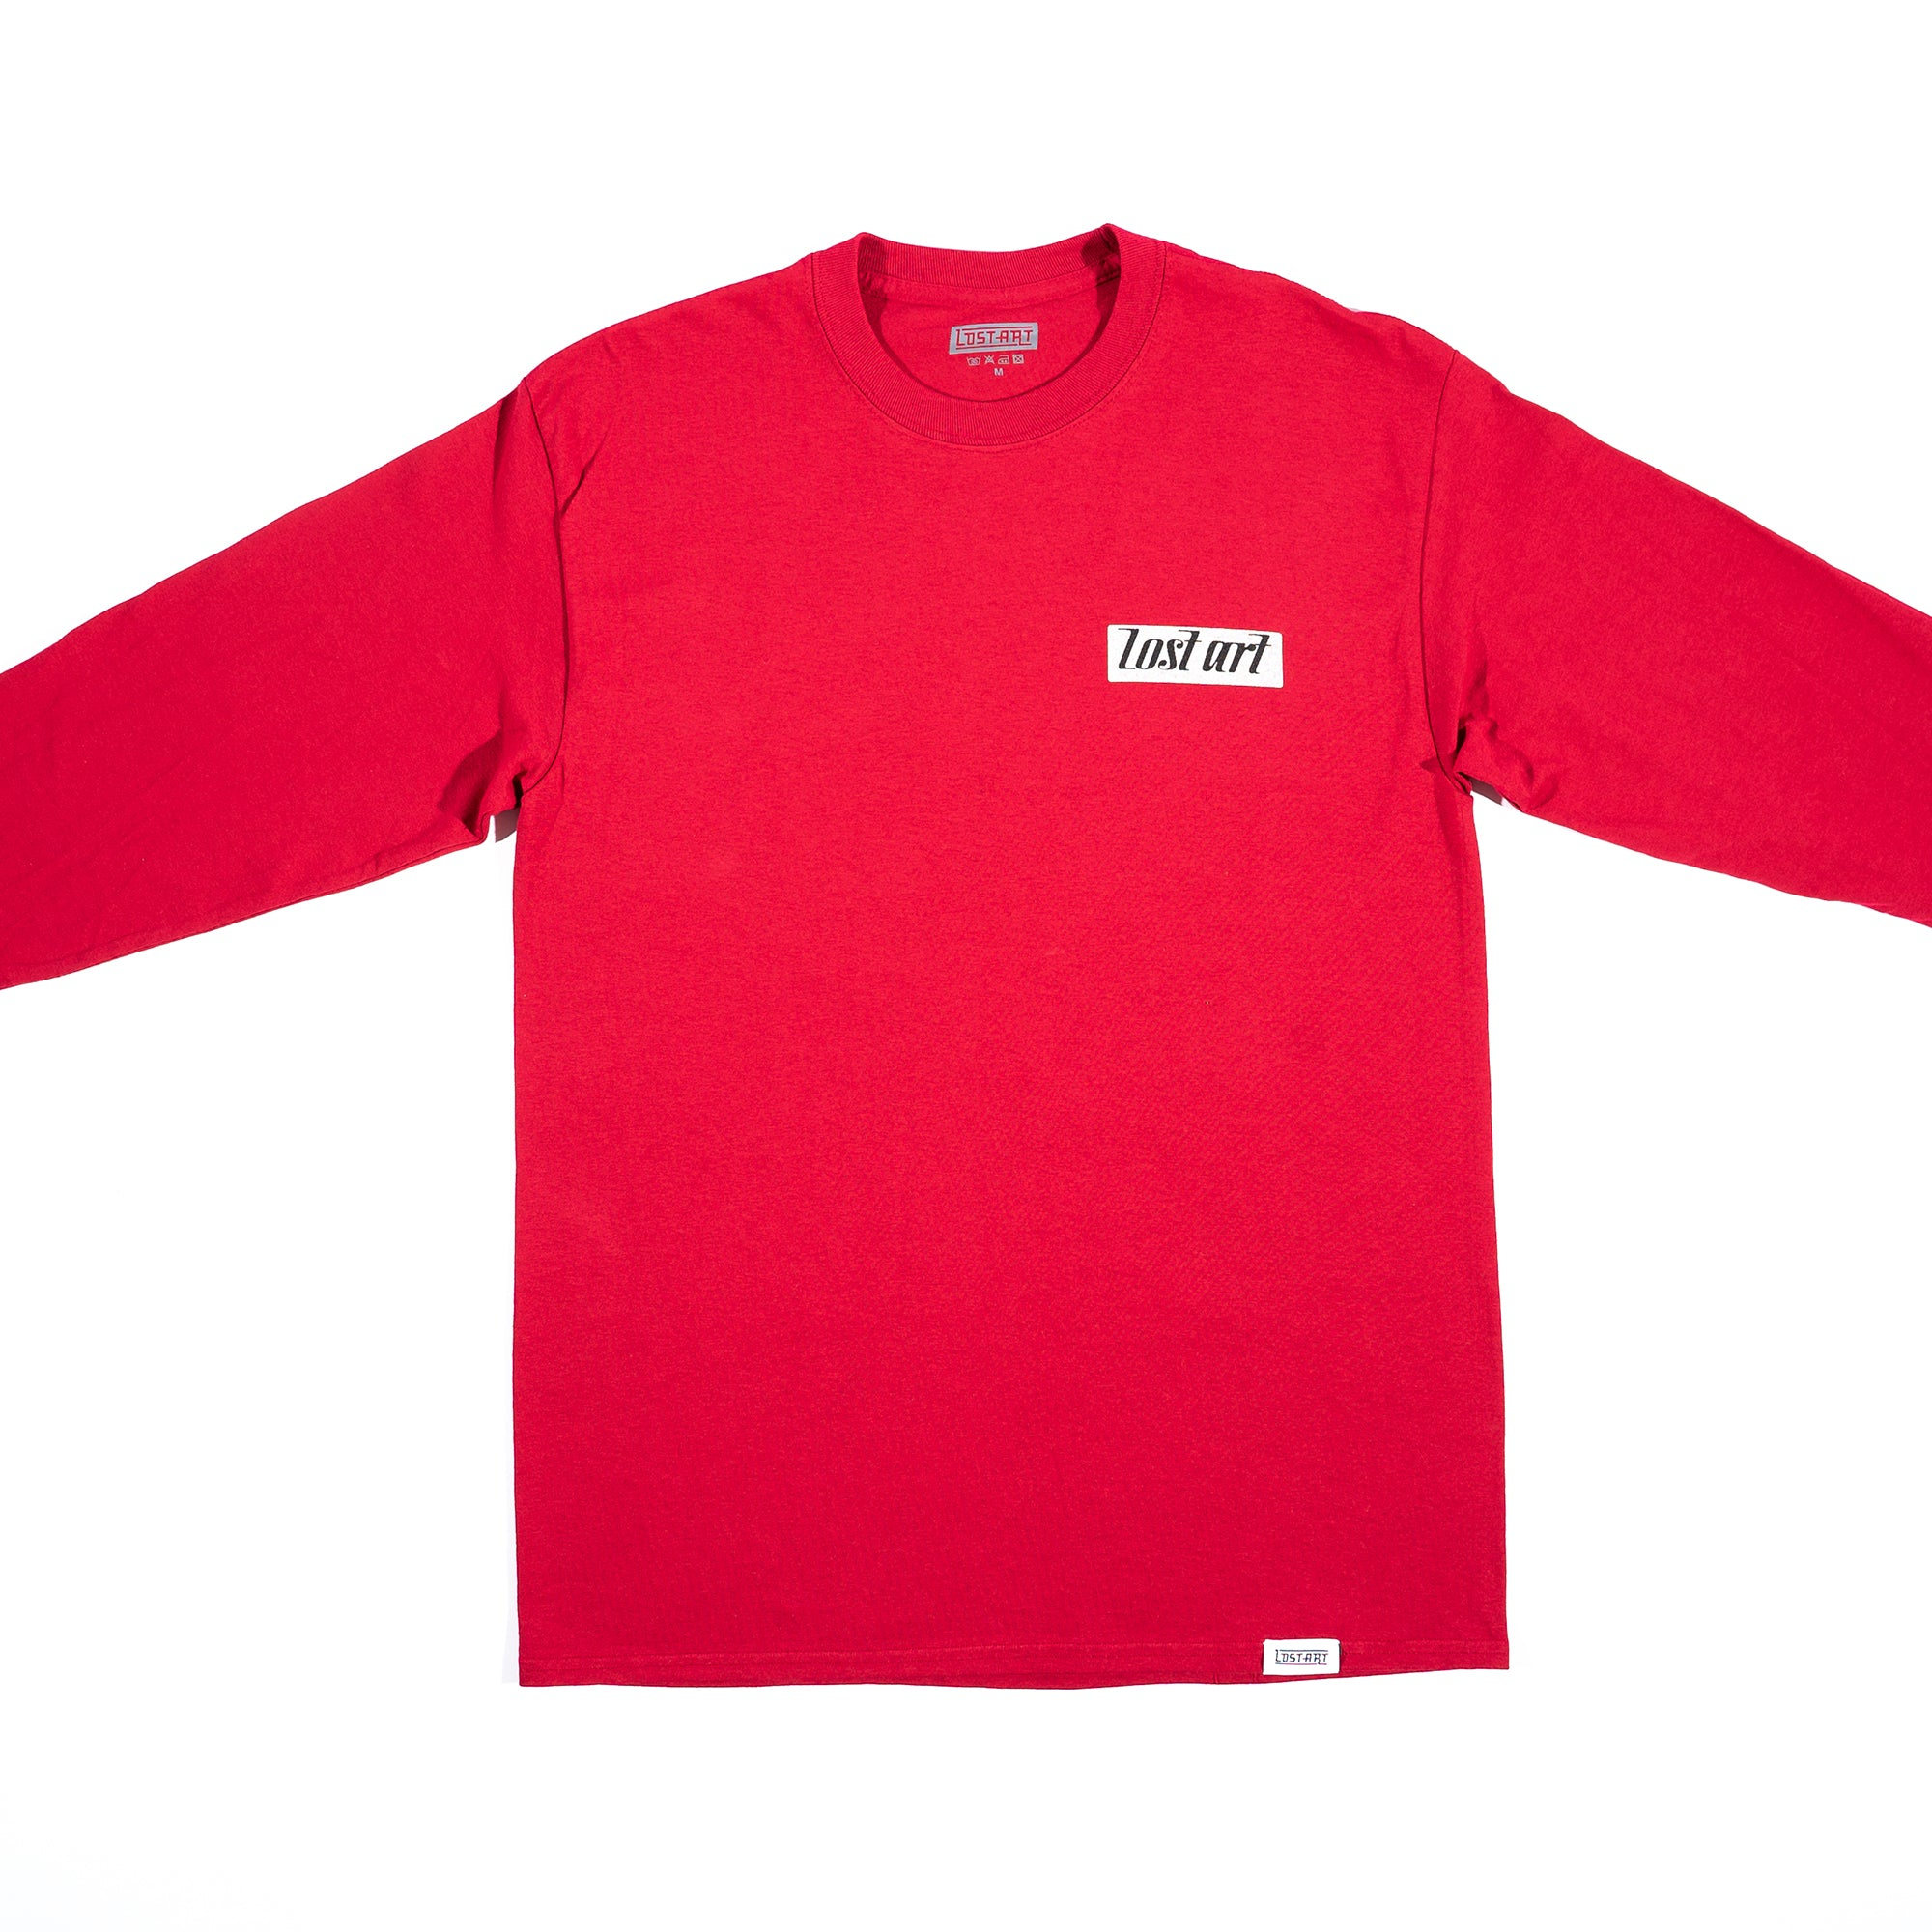 Lost Art -</br>Rhythm Kings Tee L/S </br>Cardinal Red